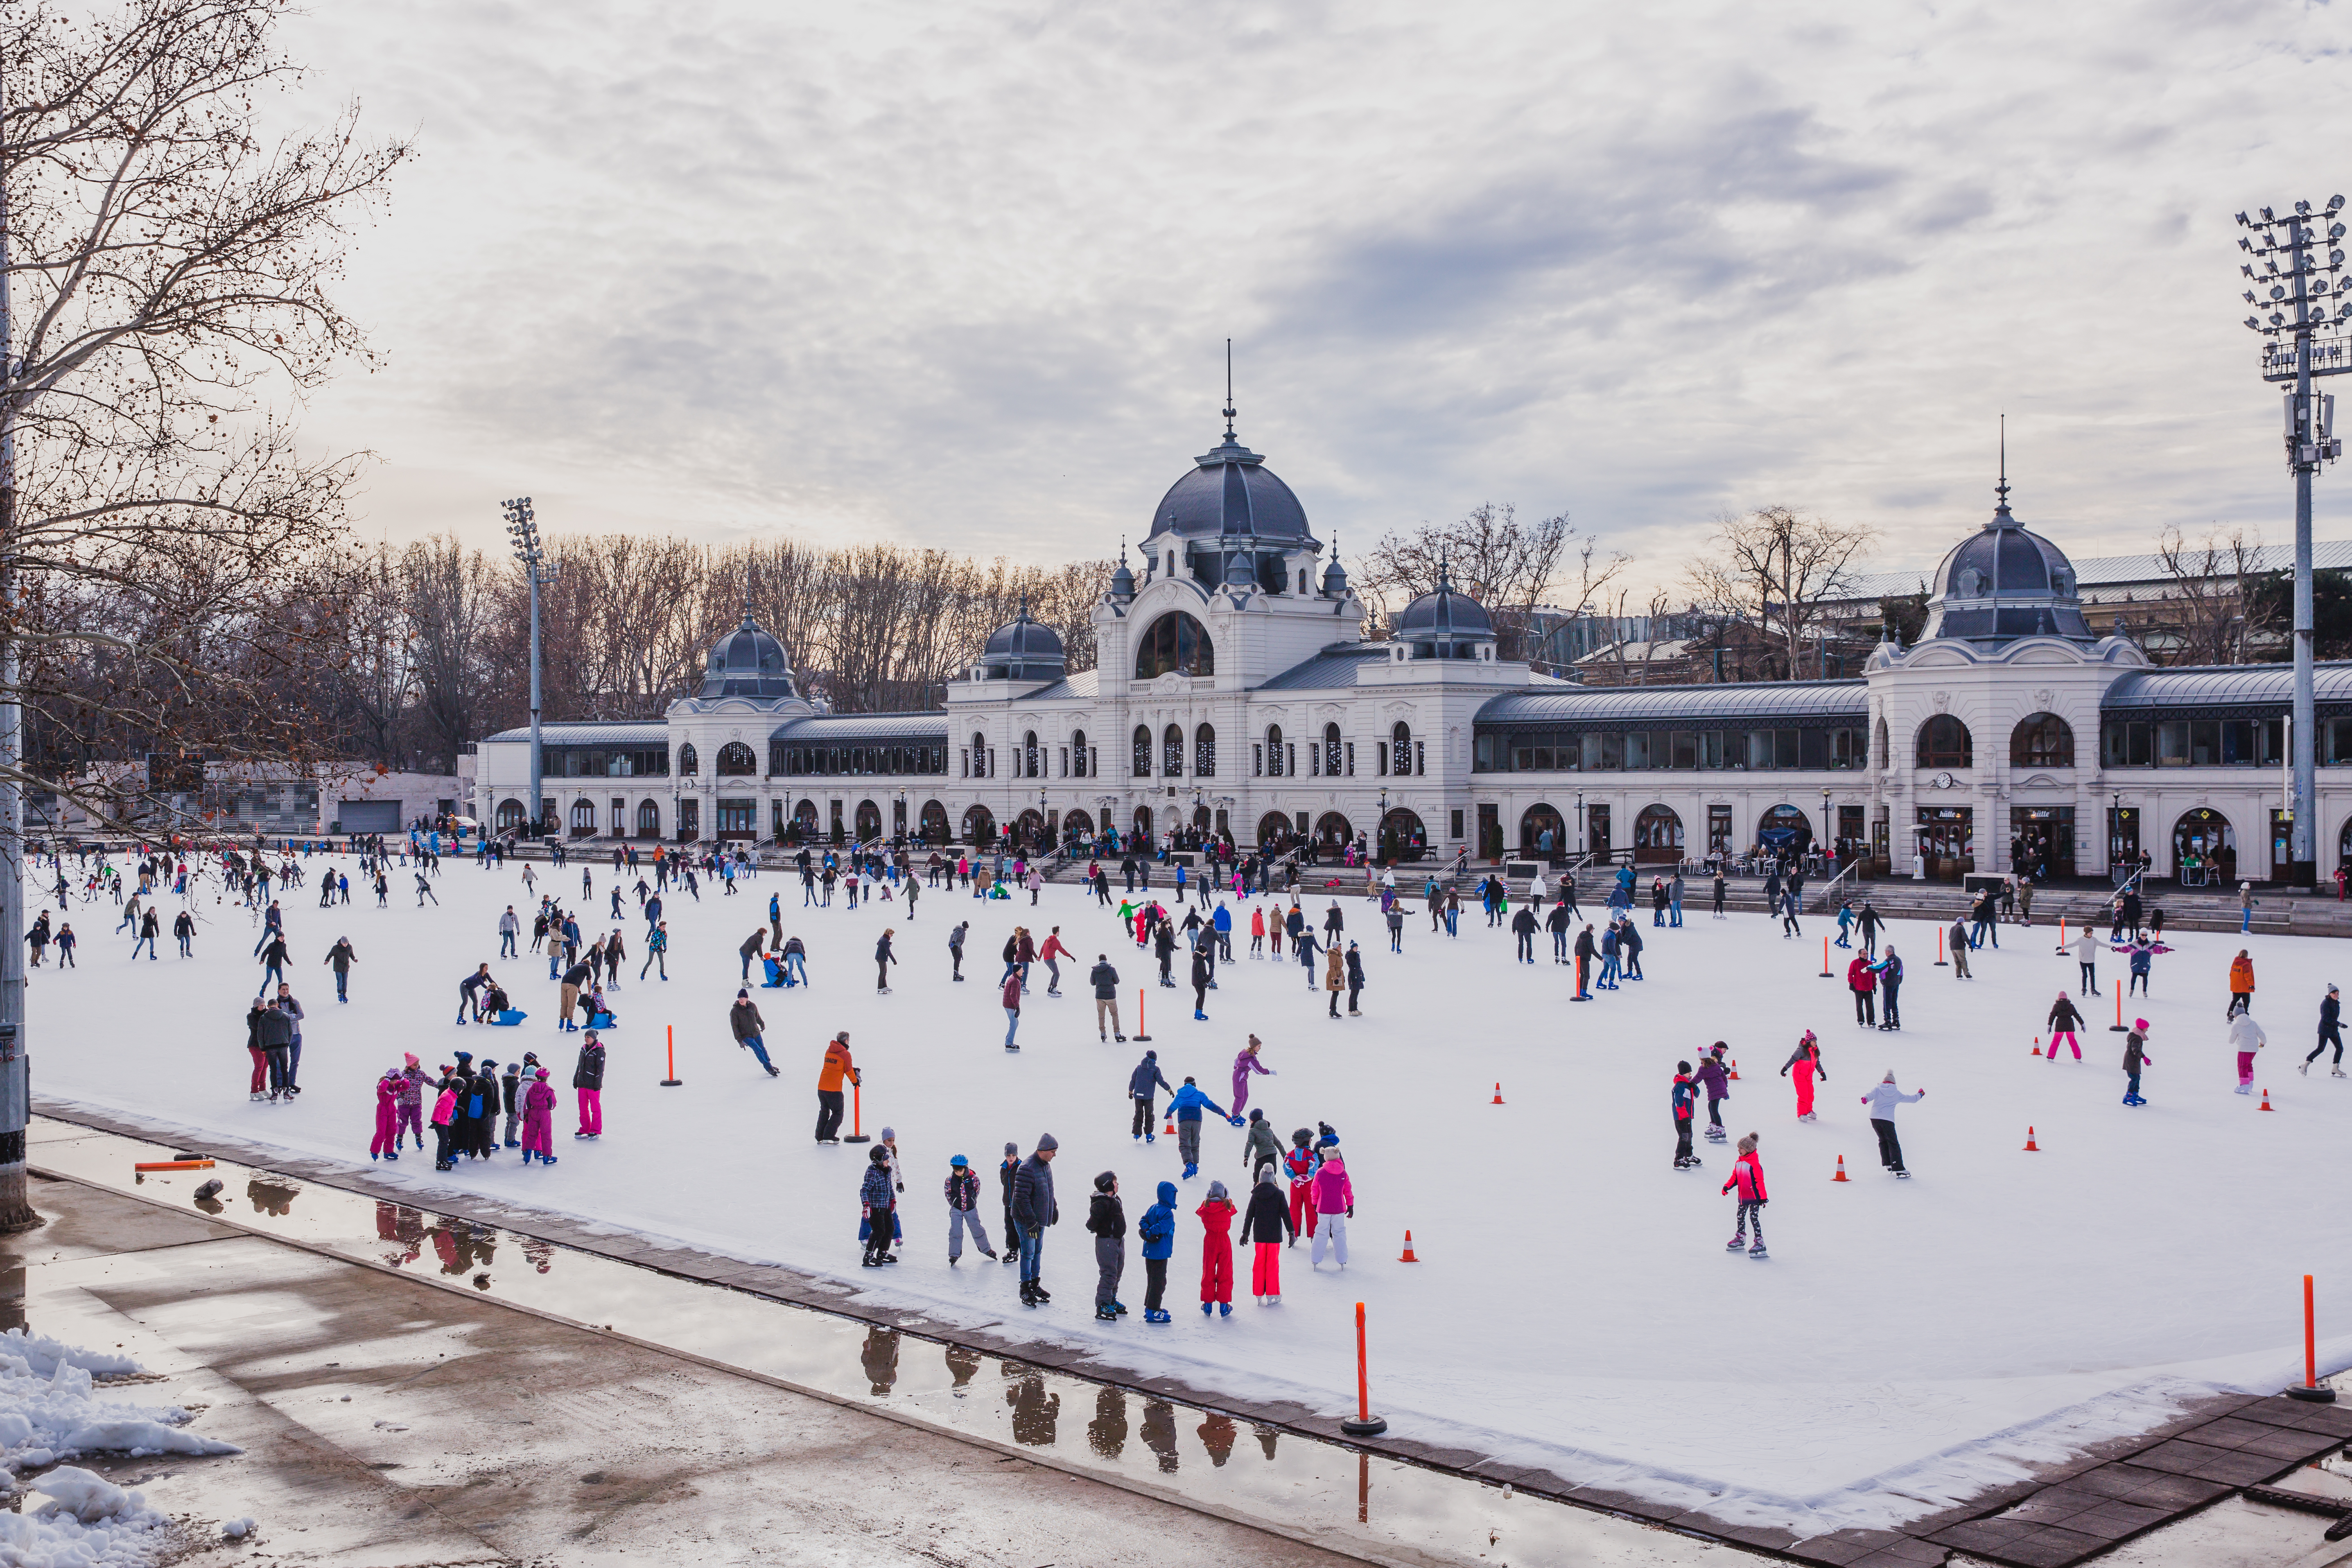 BUDAPEST, HUNGARY - DECEMBER 31, 2018: Many people spend their holidays skating in City Park ice rink in Budapest, Hungary